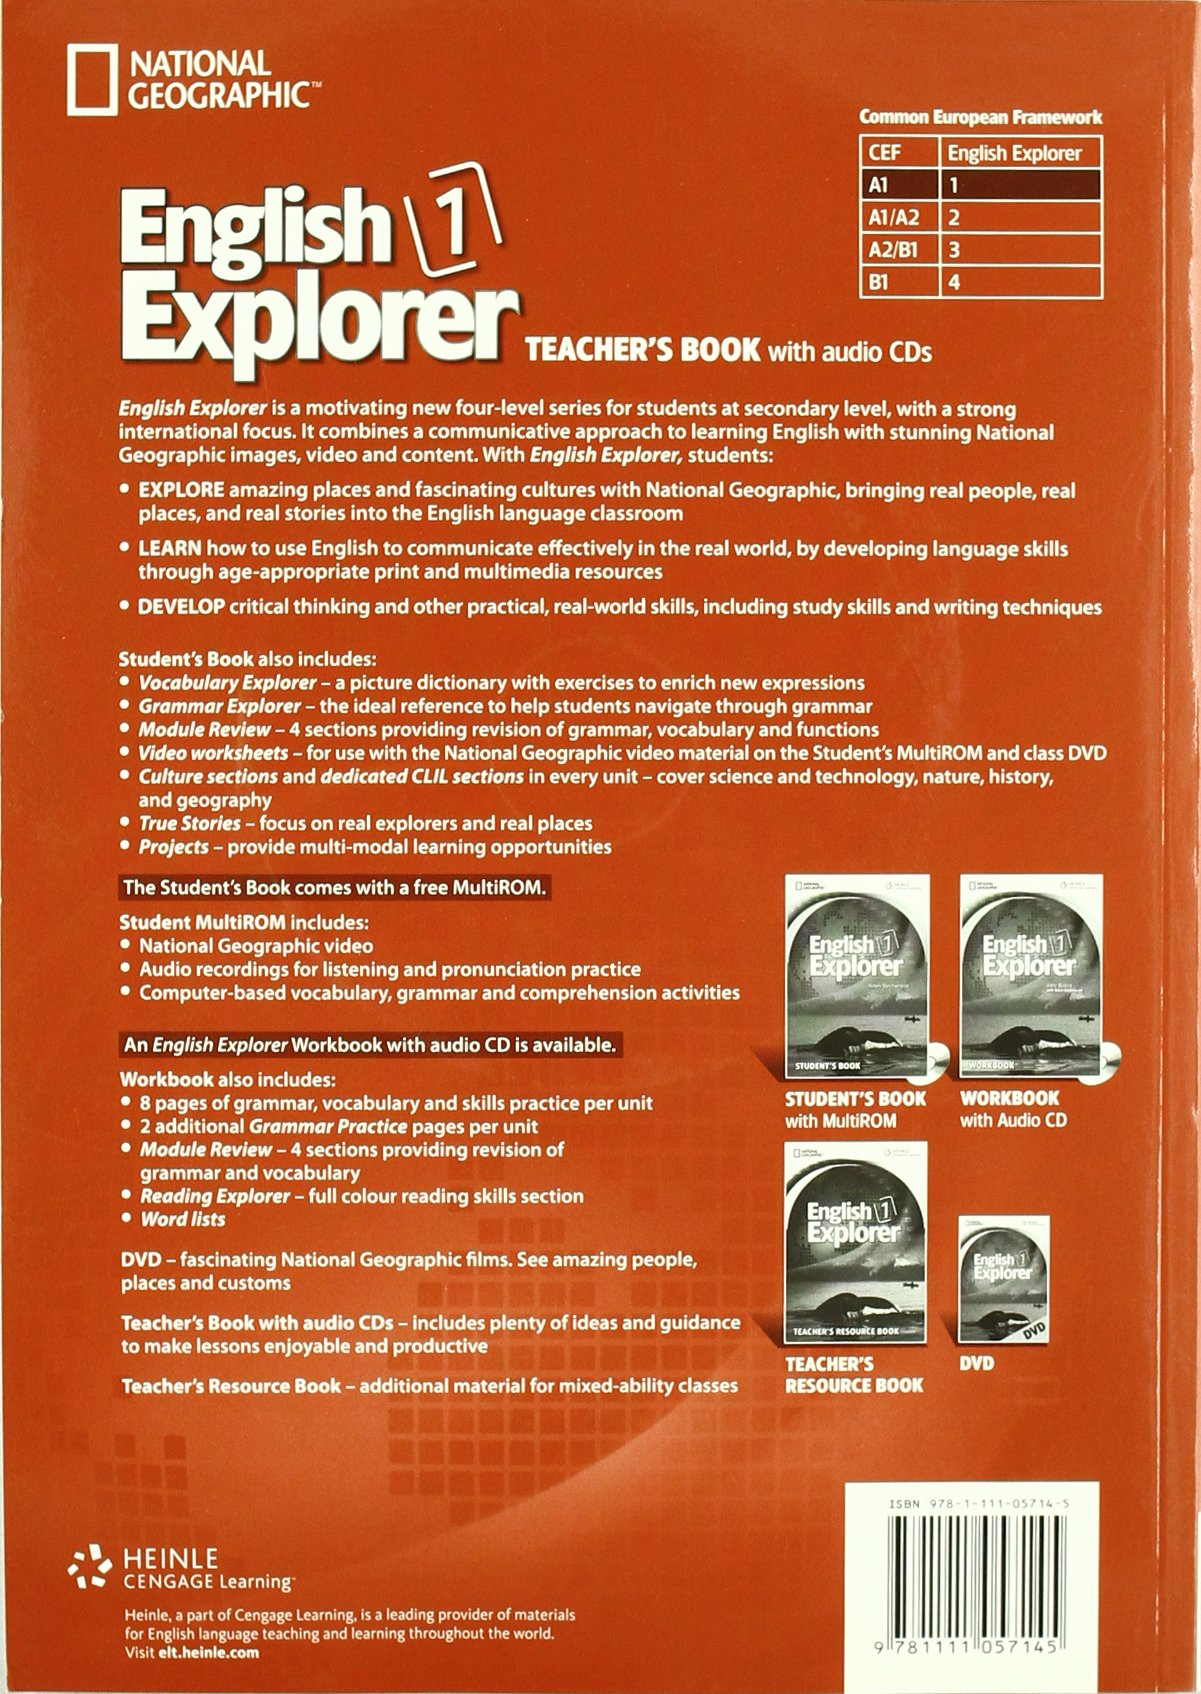 English Explorer Level 1 - Teacher Book with Audio CDs by CENGAGE Learning Custom Publishing